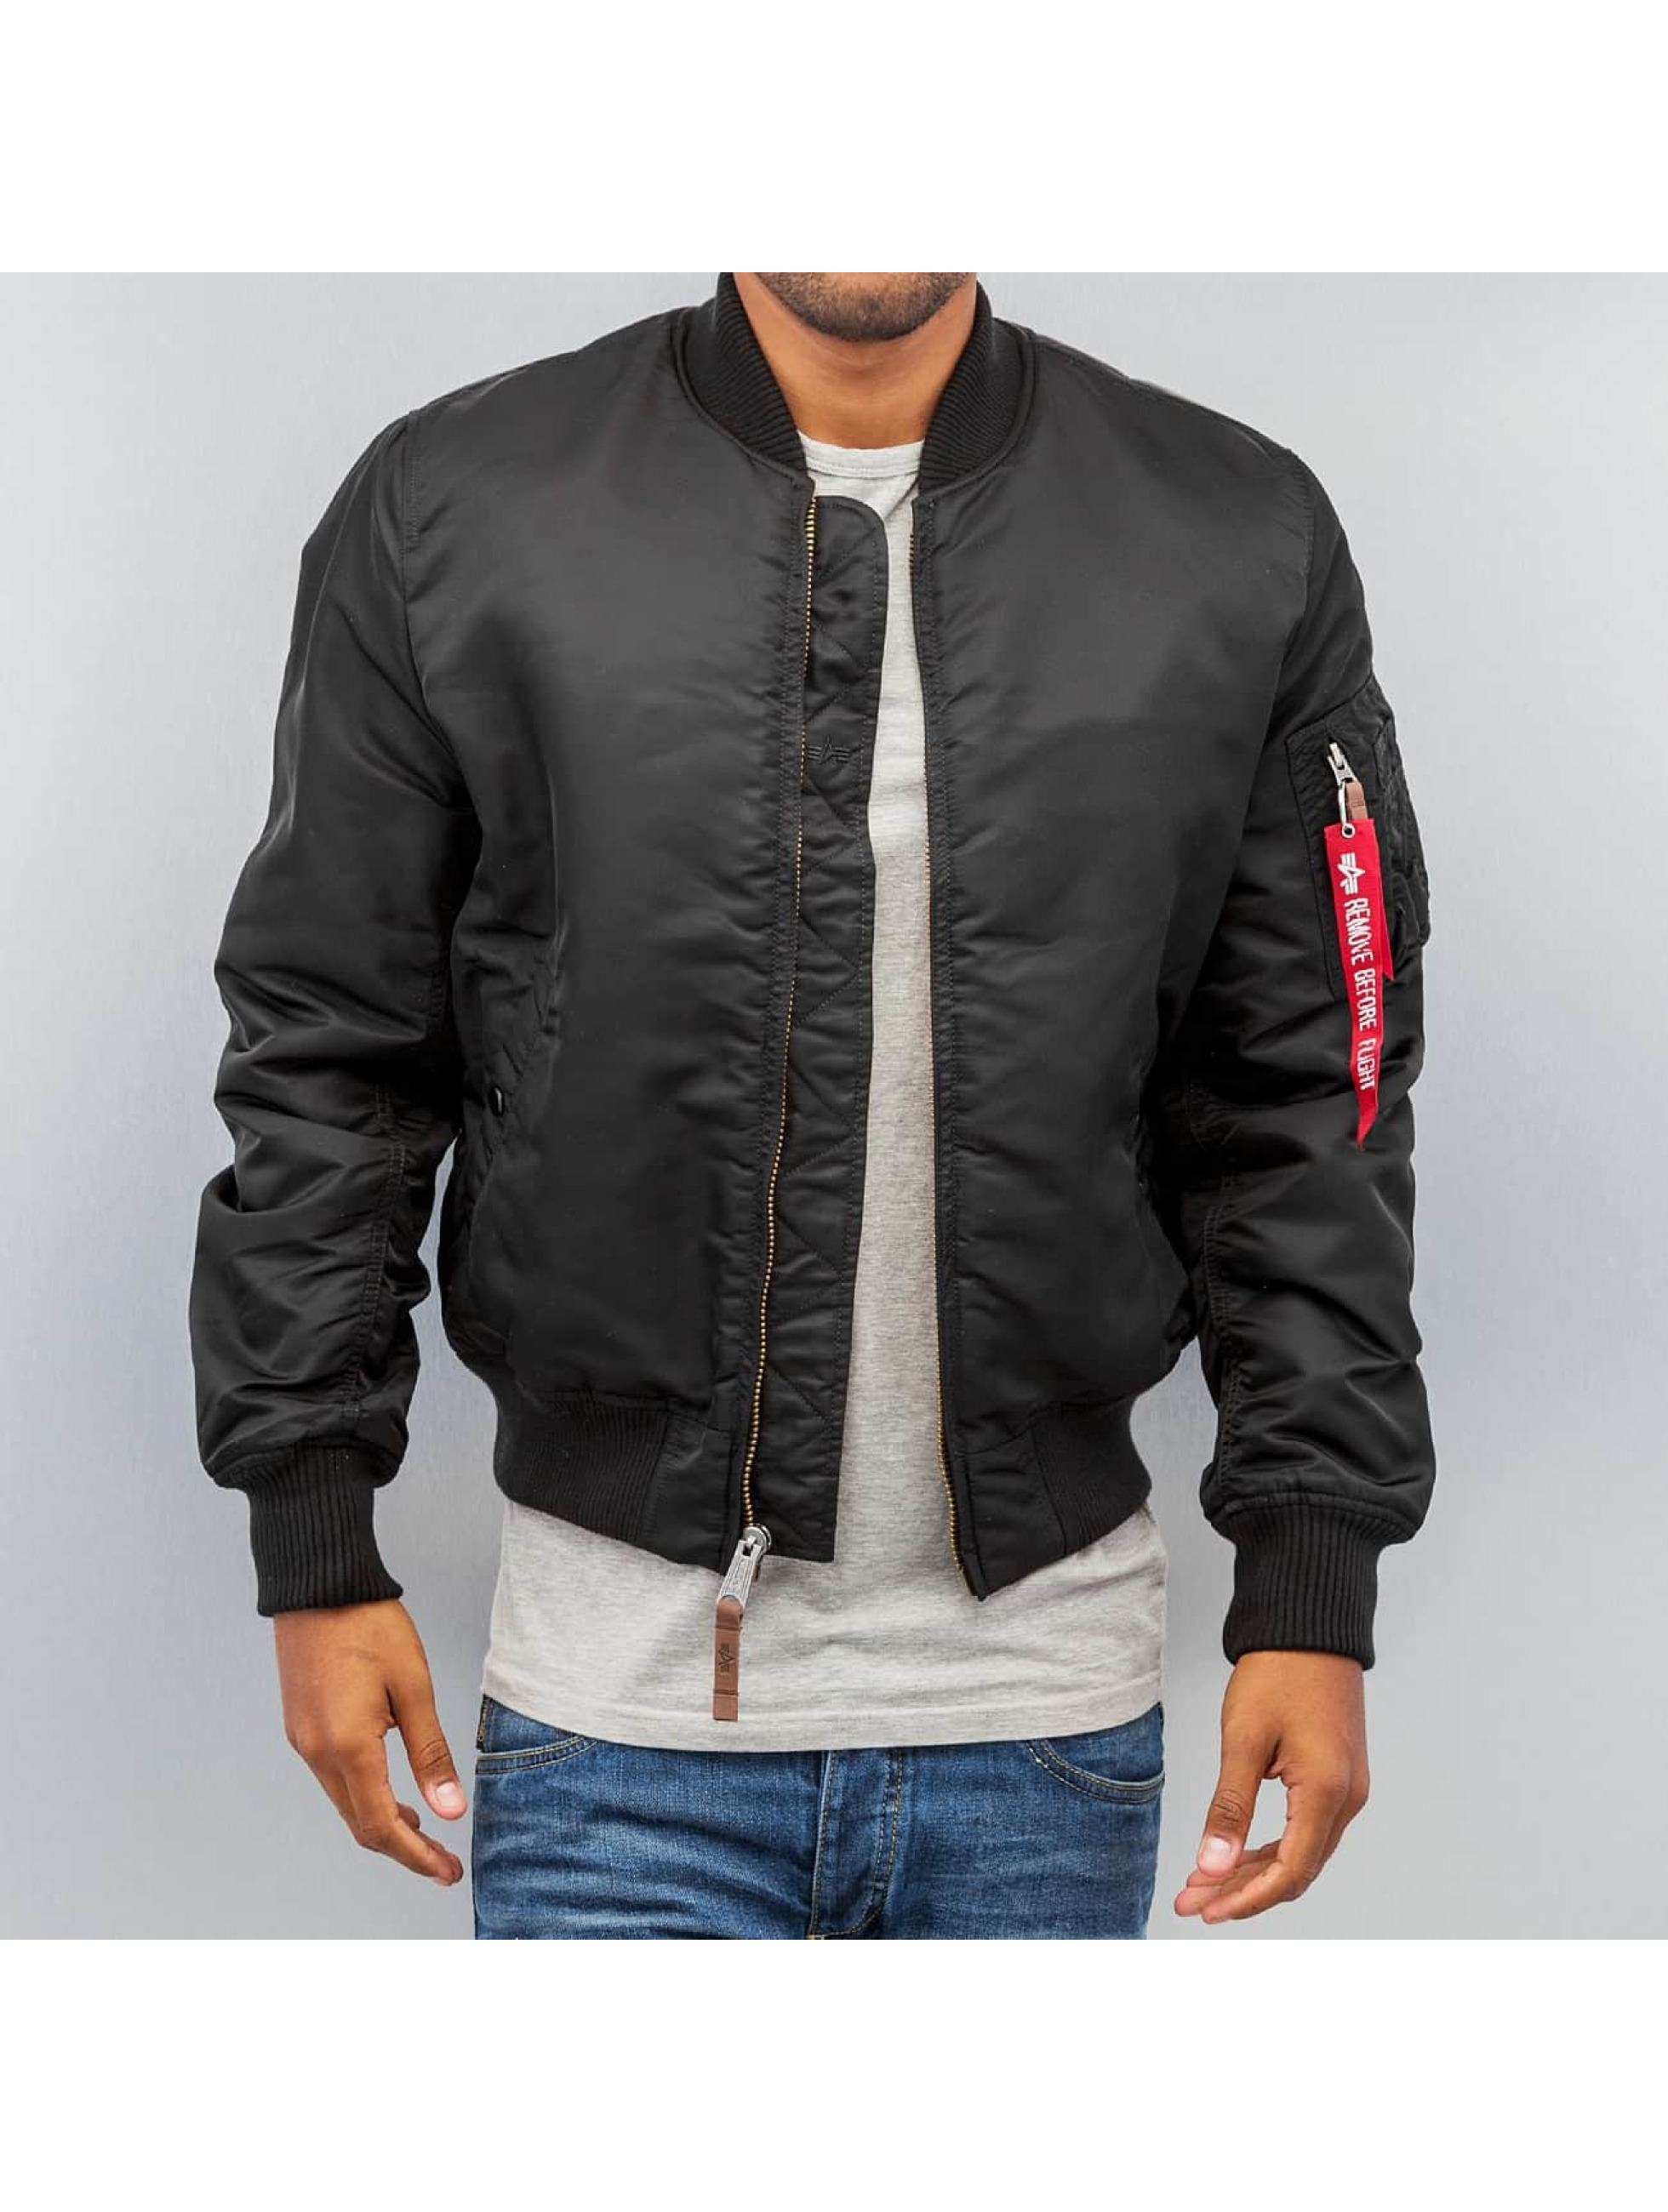 More than 40 different styles and colorways of the legendary Alpha Industries MA-1 jacket and much more are now available at choreadz.ml